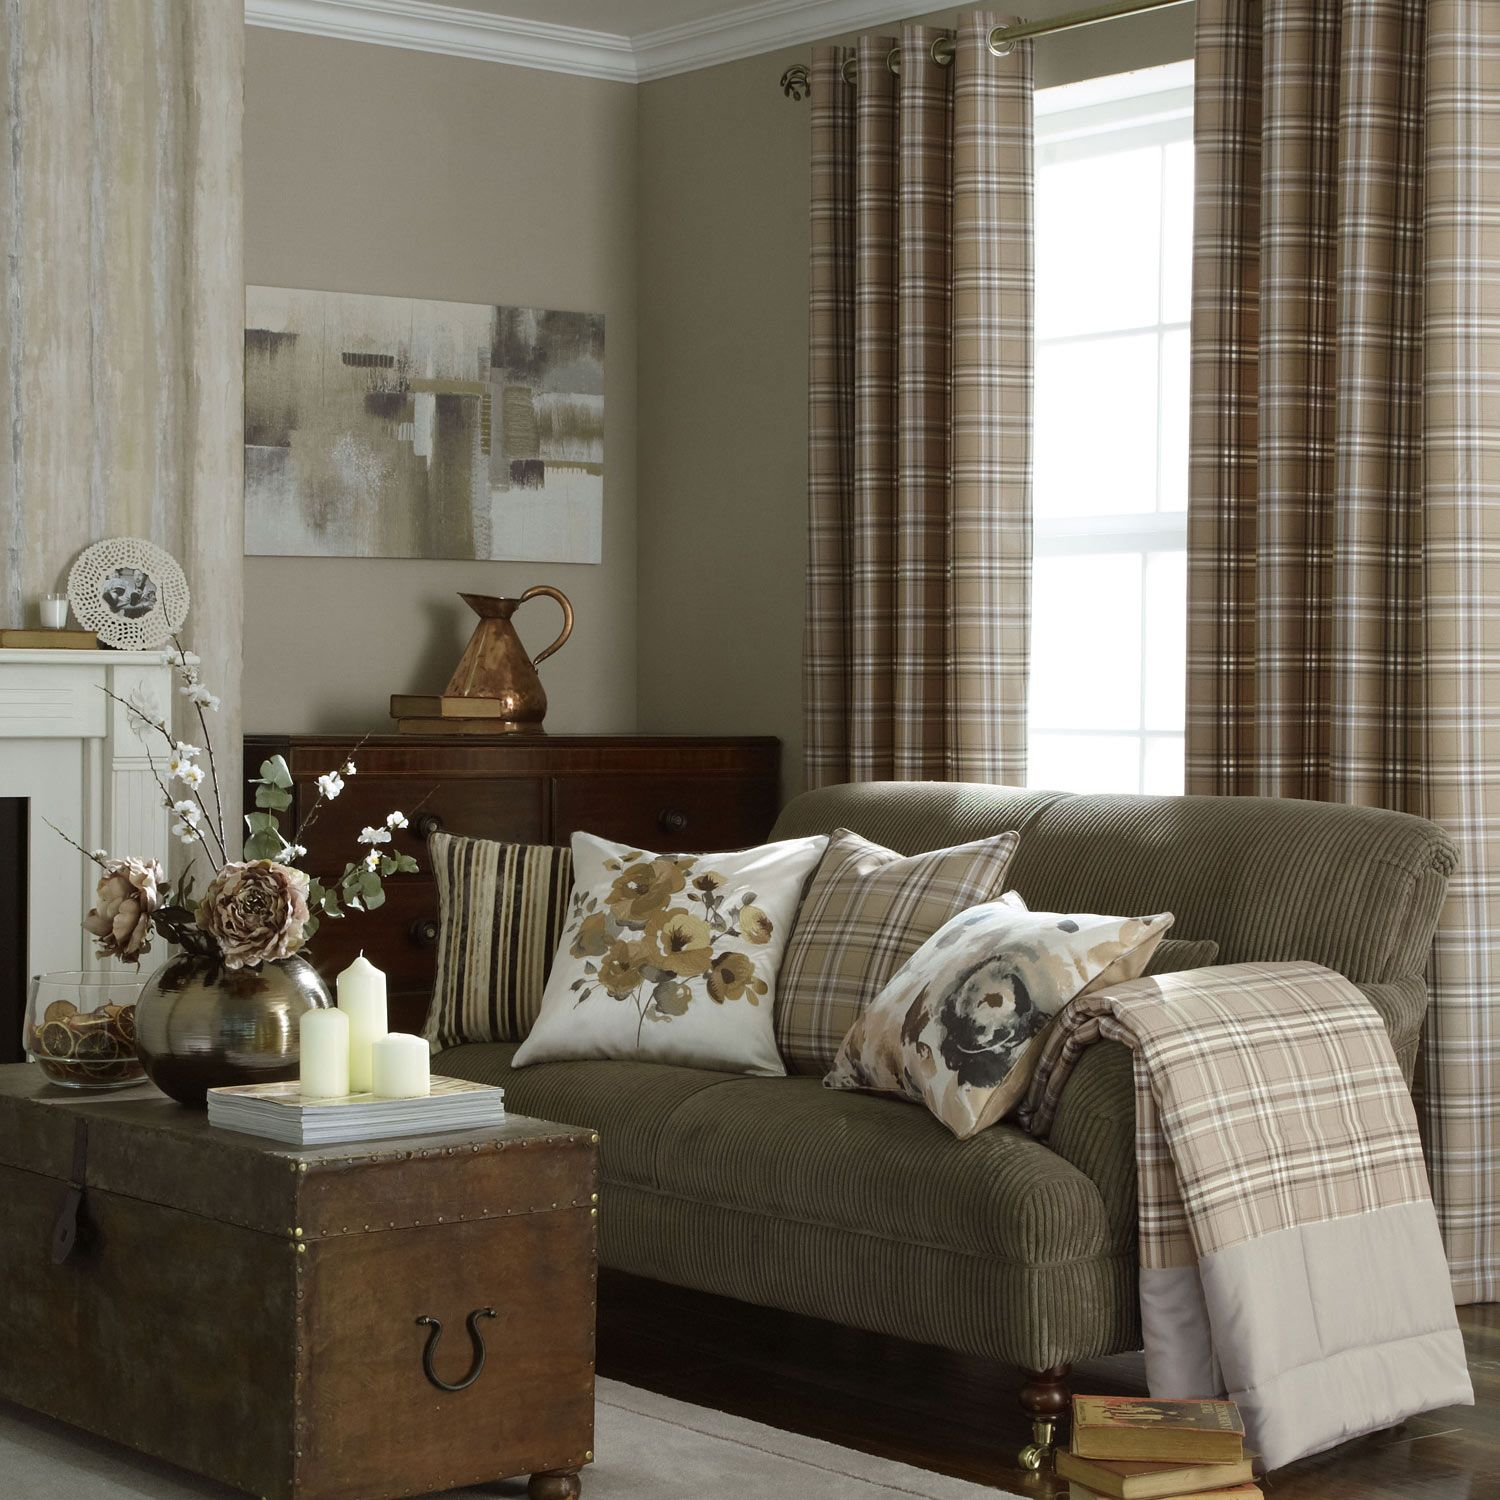 23 Best Beige Living Room Design Ideas For 2020: ILiv Piazza Cerato Tartan Check Eyelet Curtains